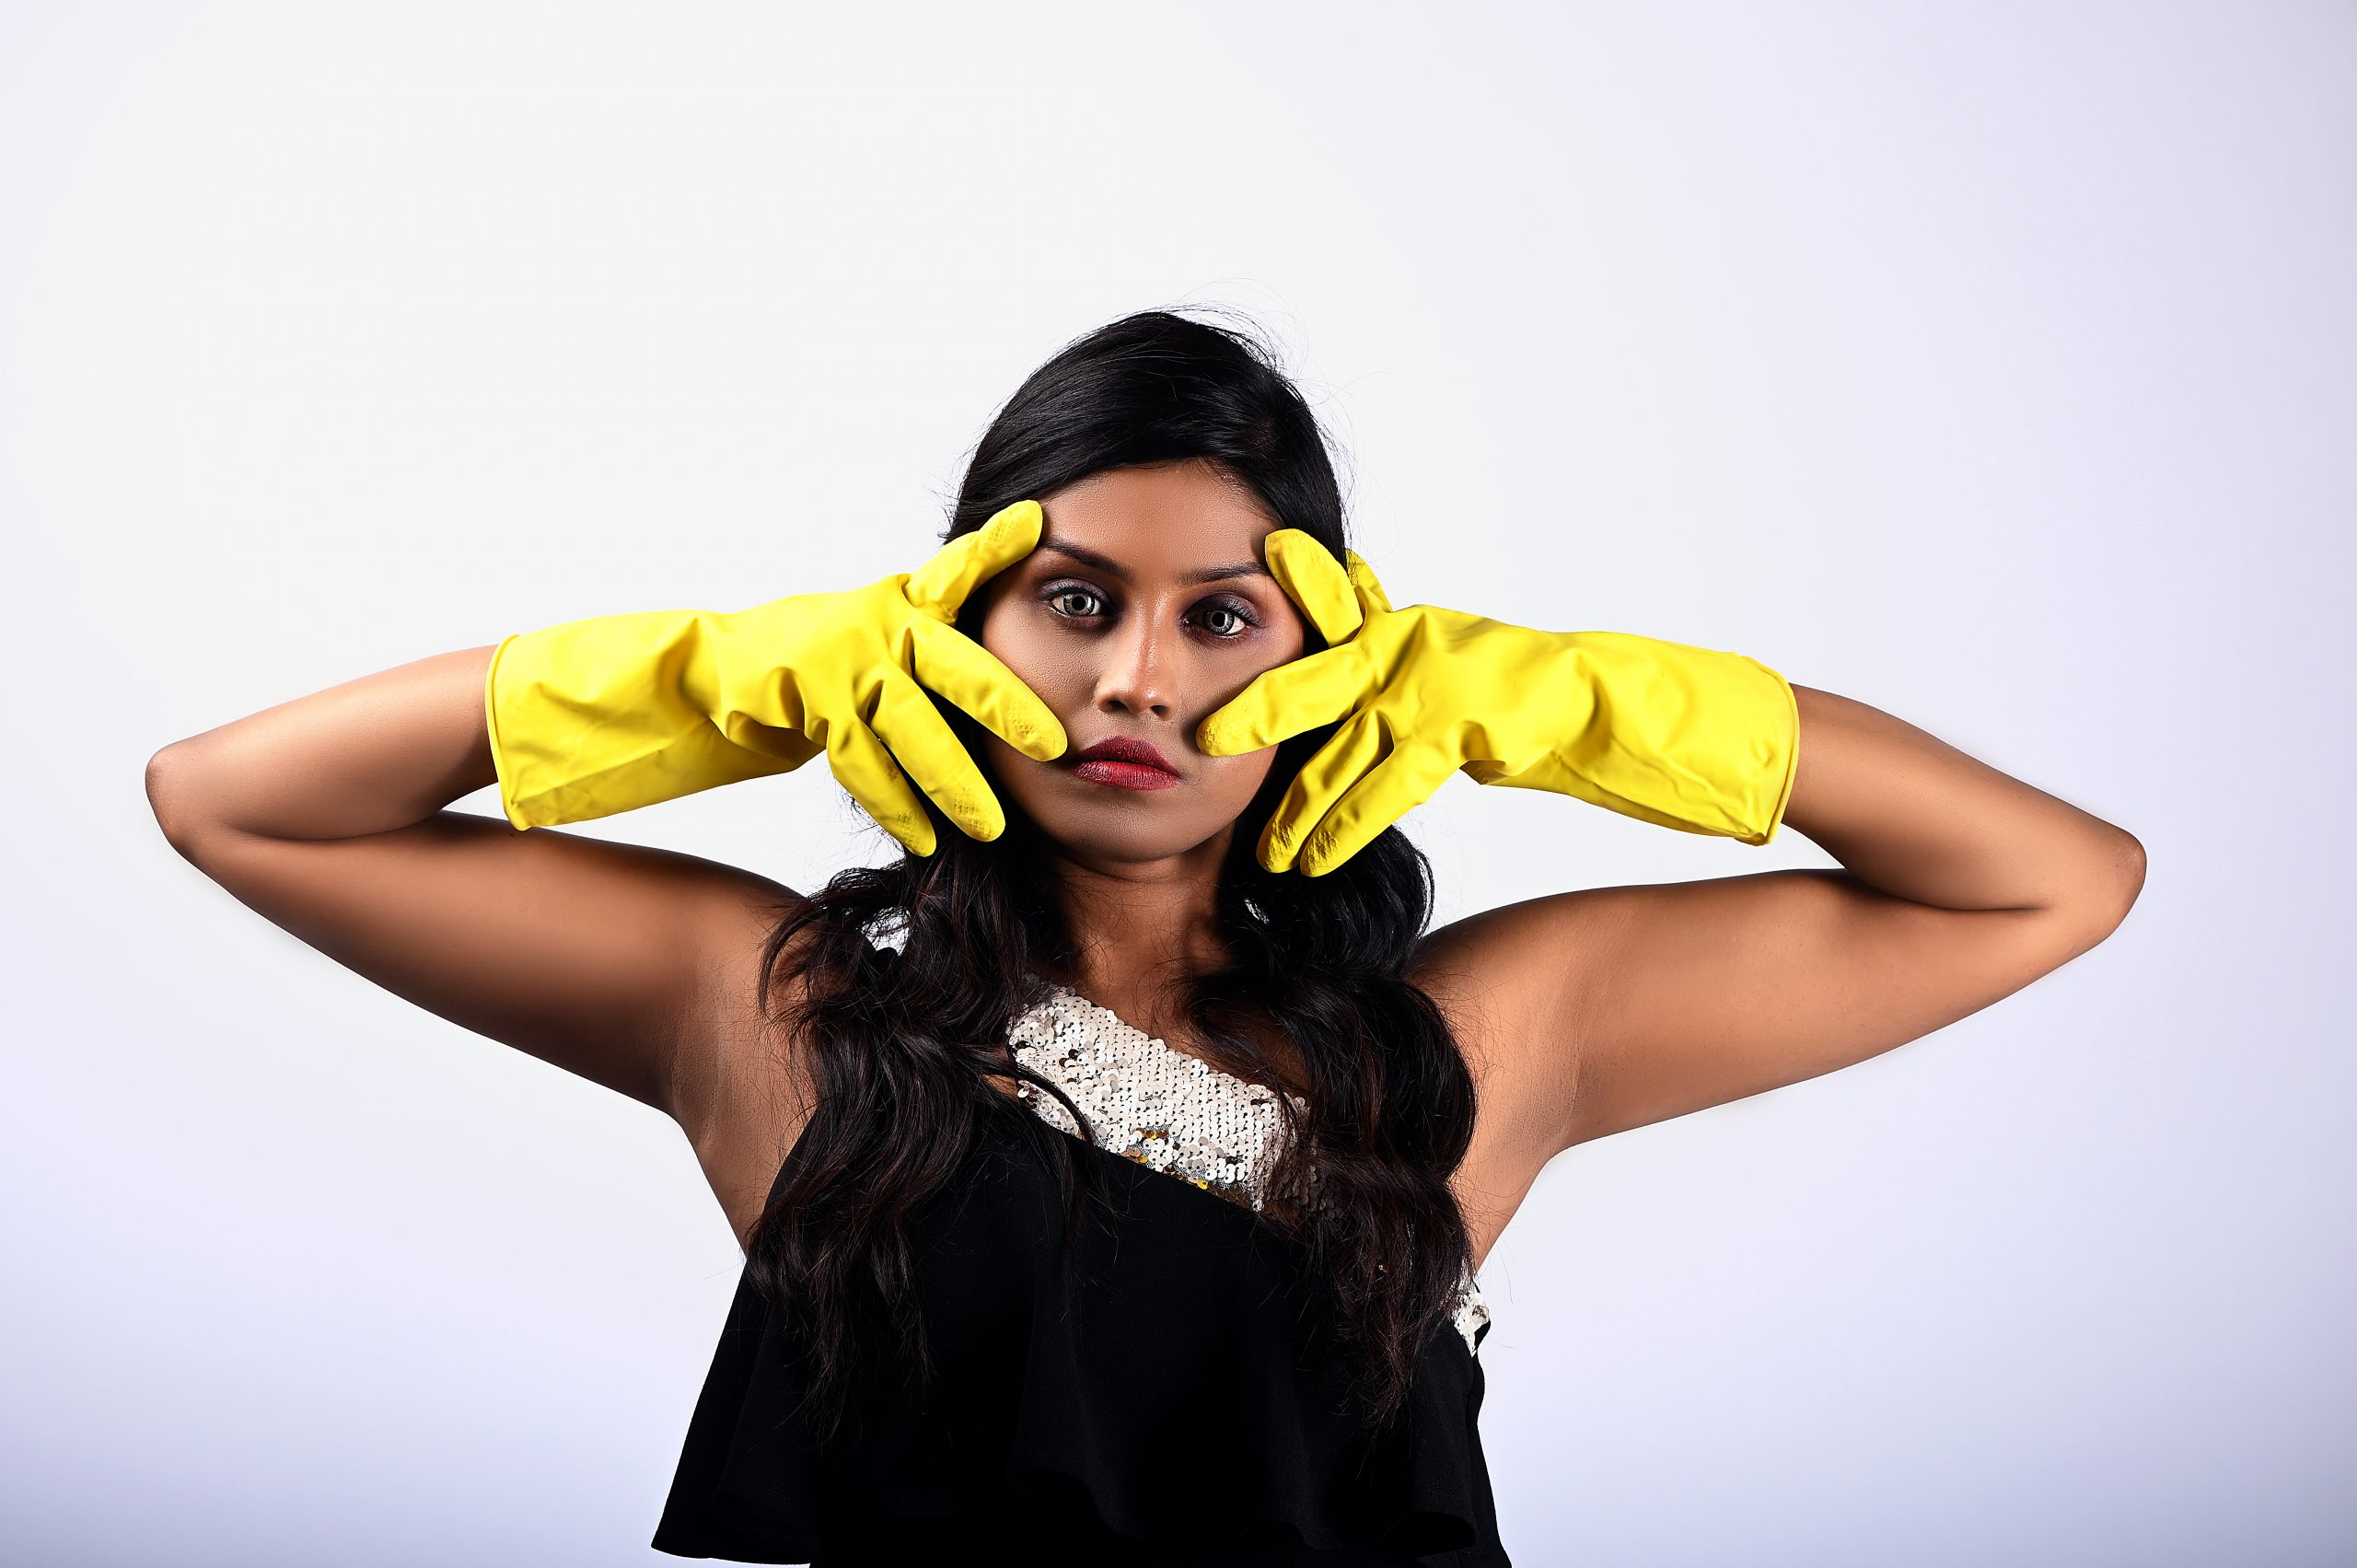 Girl posing while wearing hand gloves